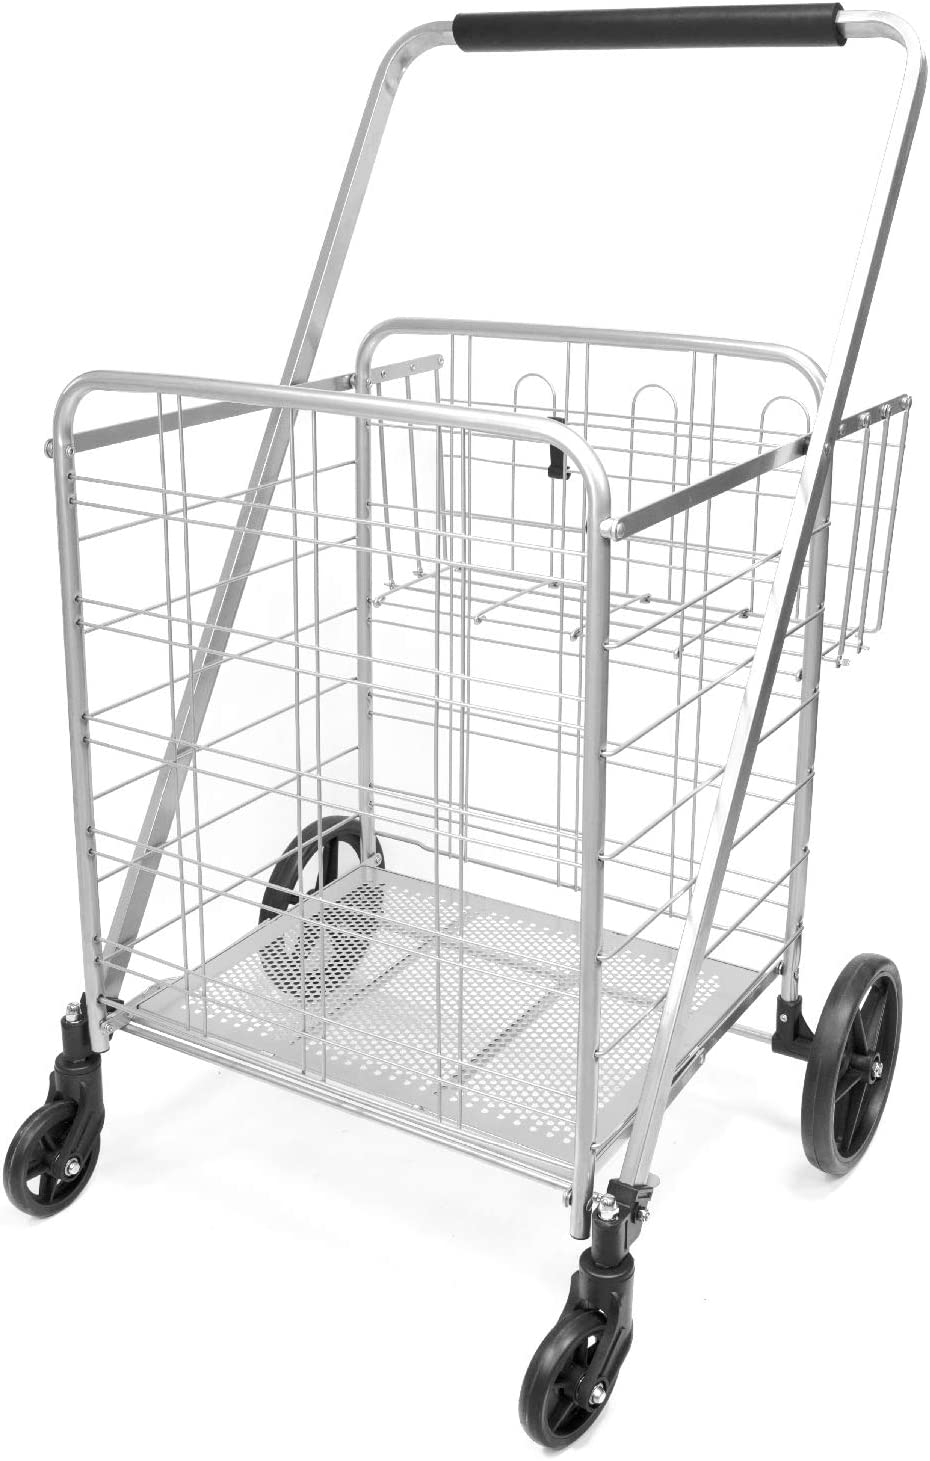 Luggage Grocery Supenice Jumbo Shopping Cart with Double Basket Grocery Cart 160 lbs Capacity Deluxe Folding Shopping Cart 360/°Rolling Swivel Bearing Wheels Super Loading Utility Cart for Laundry